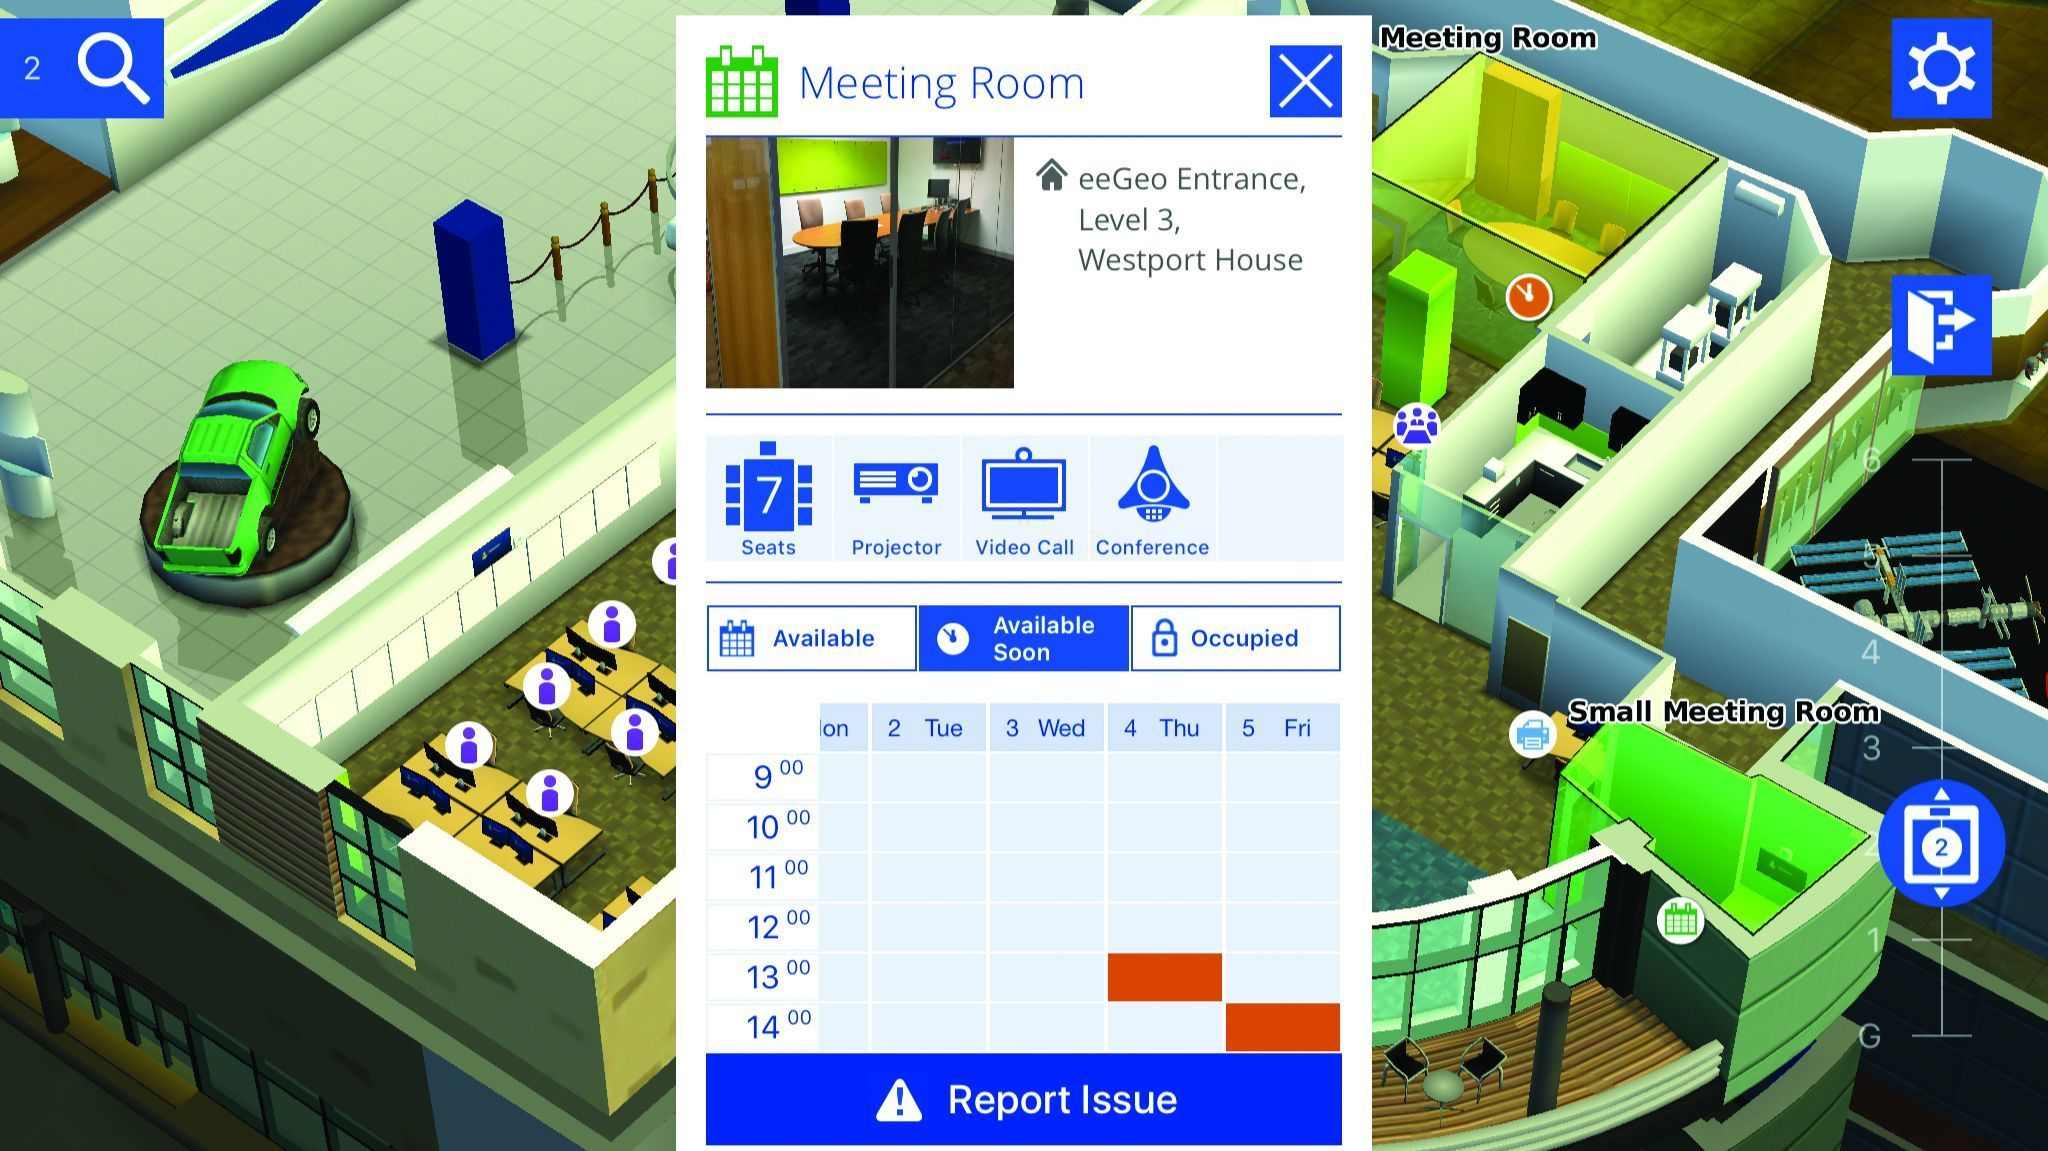 Wrld makes its service available to app developers to integrate their services, including conference room scheduling above.